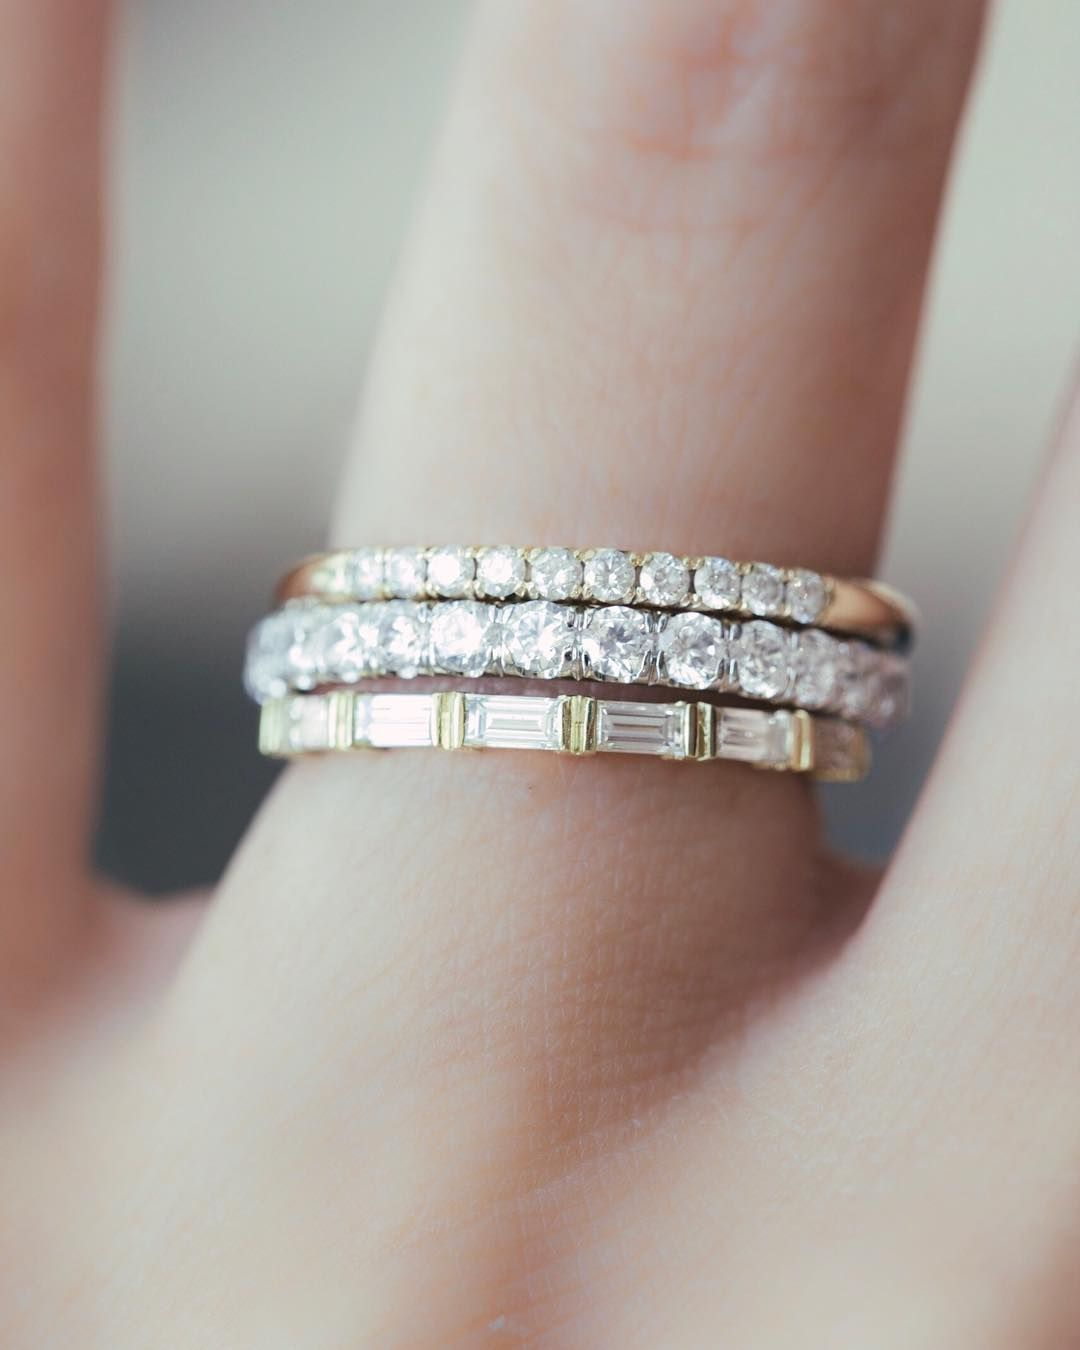 Starry Fingers There Aren T Rules On Who Or How To Wear Diamonds Single Treatyoself Ma Diamond Wedding Bands Wedding Ring Diamond Band Diamond Bands